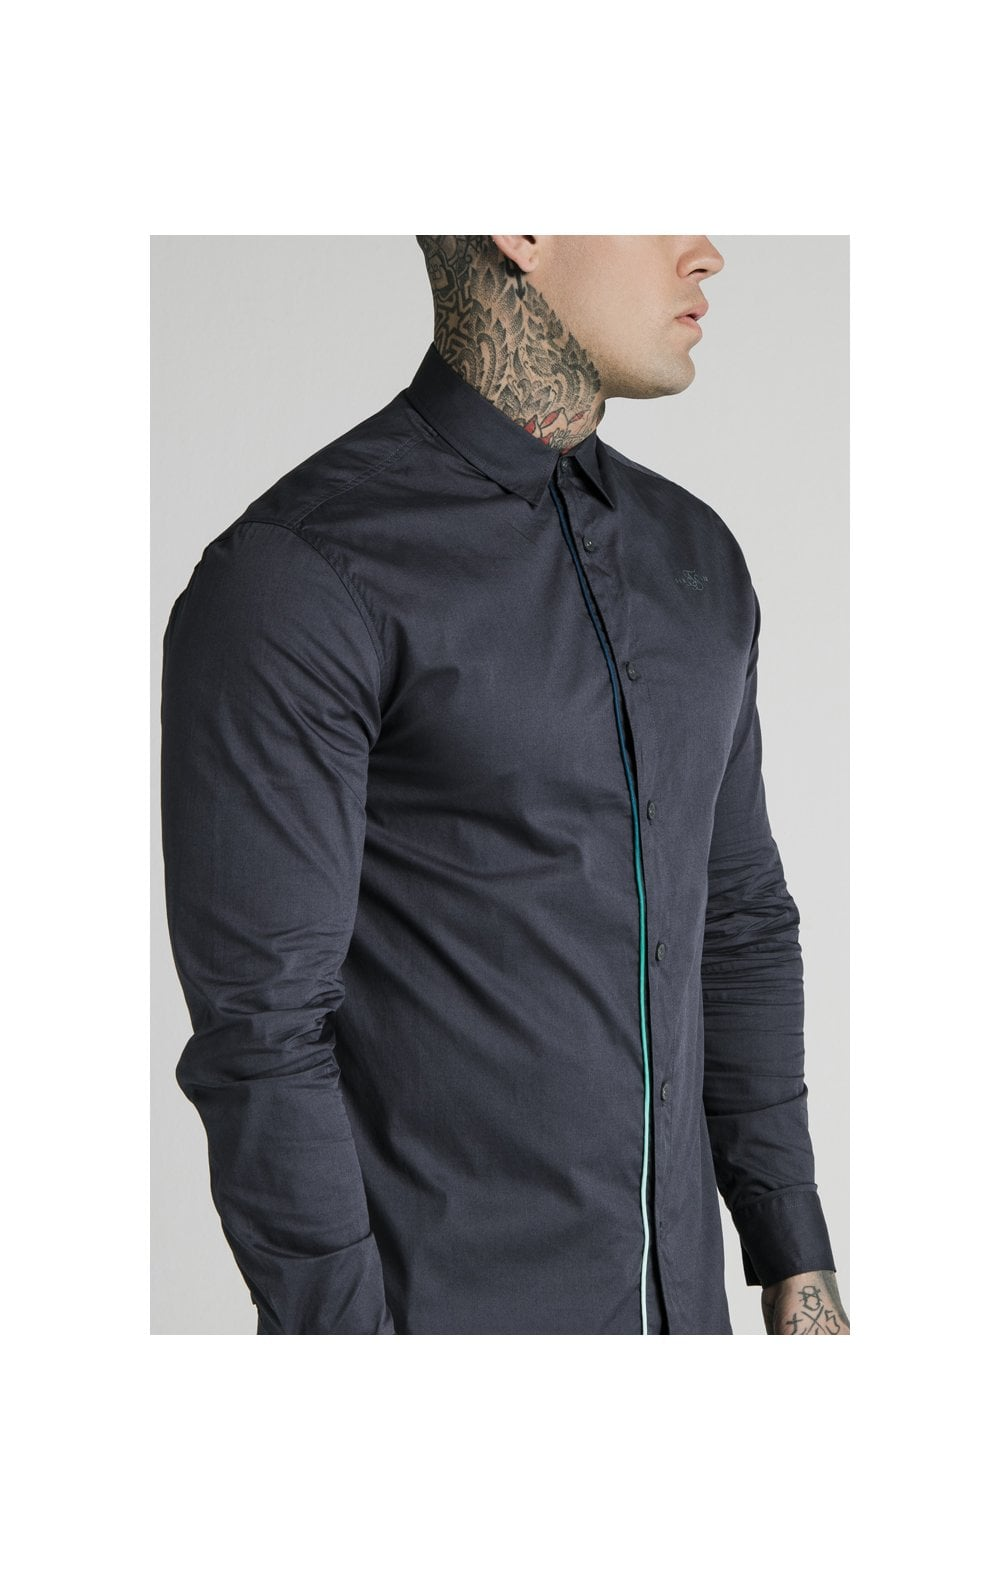 Load image into Gallery viewer, SikSilk L/S Fade Piping Shirt - Navy (2)